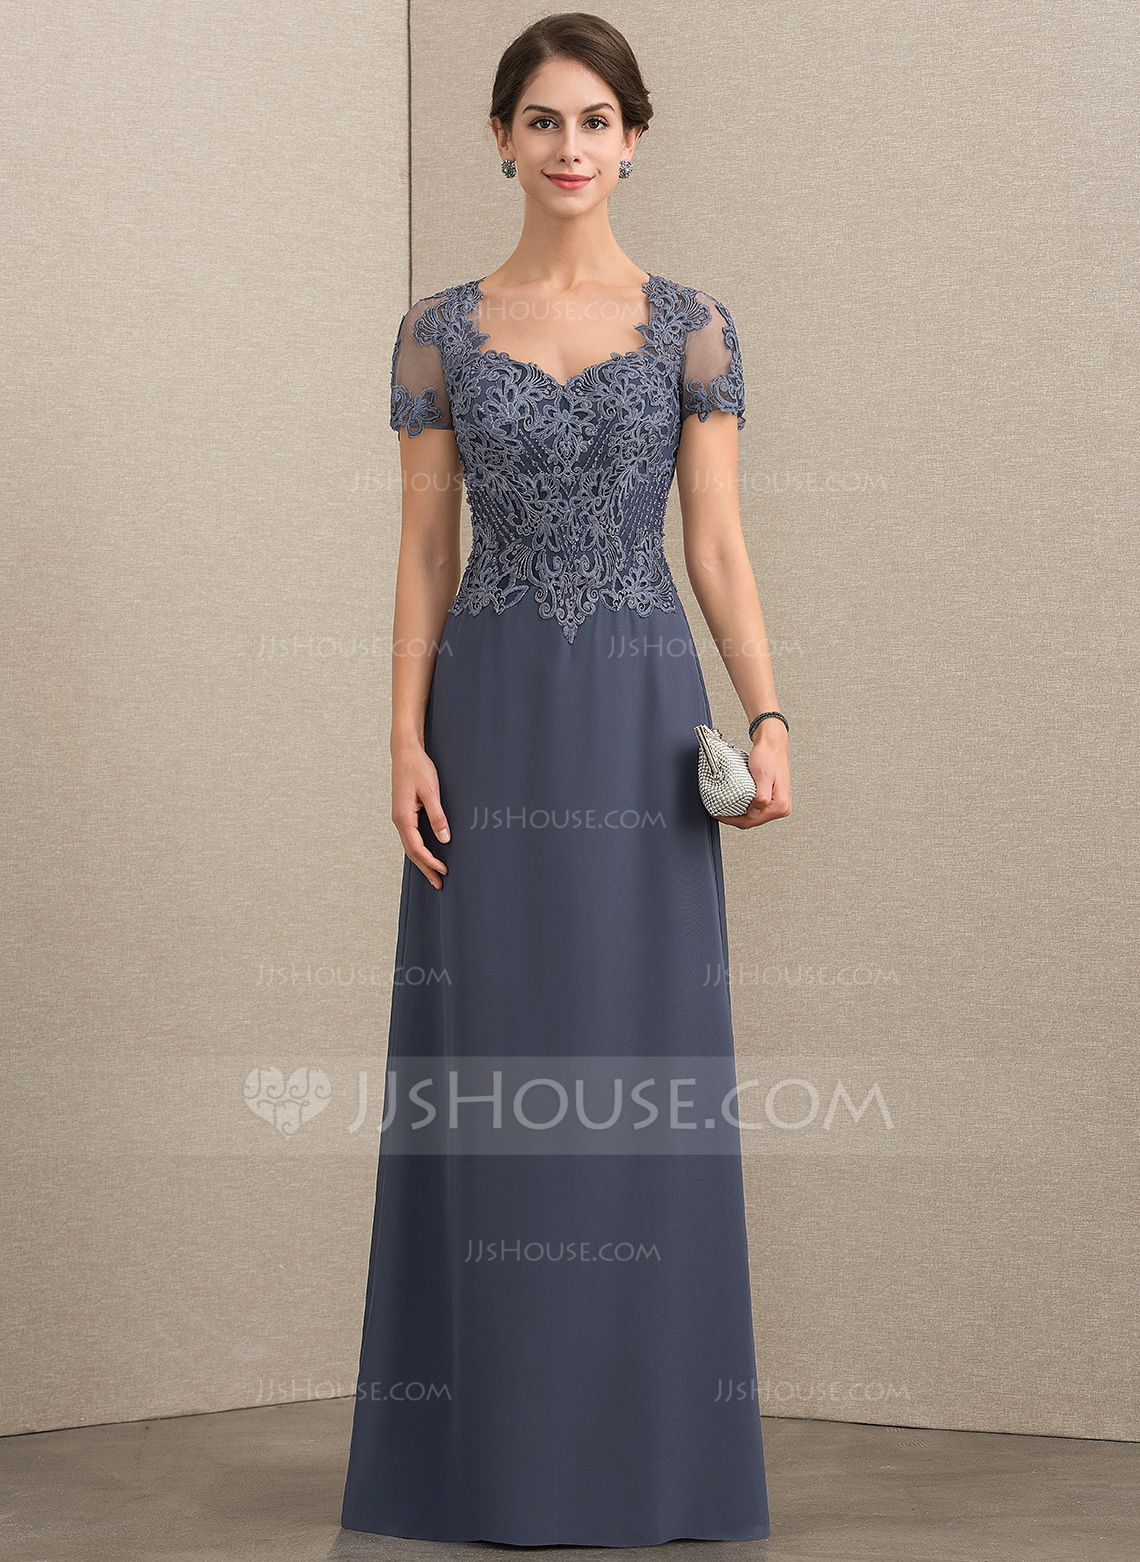 5264596193b A-Line Princess Sweetheart Floor-Length Chiffon Lace Mother of the Bride  Dress With Beading Sequins